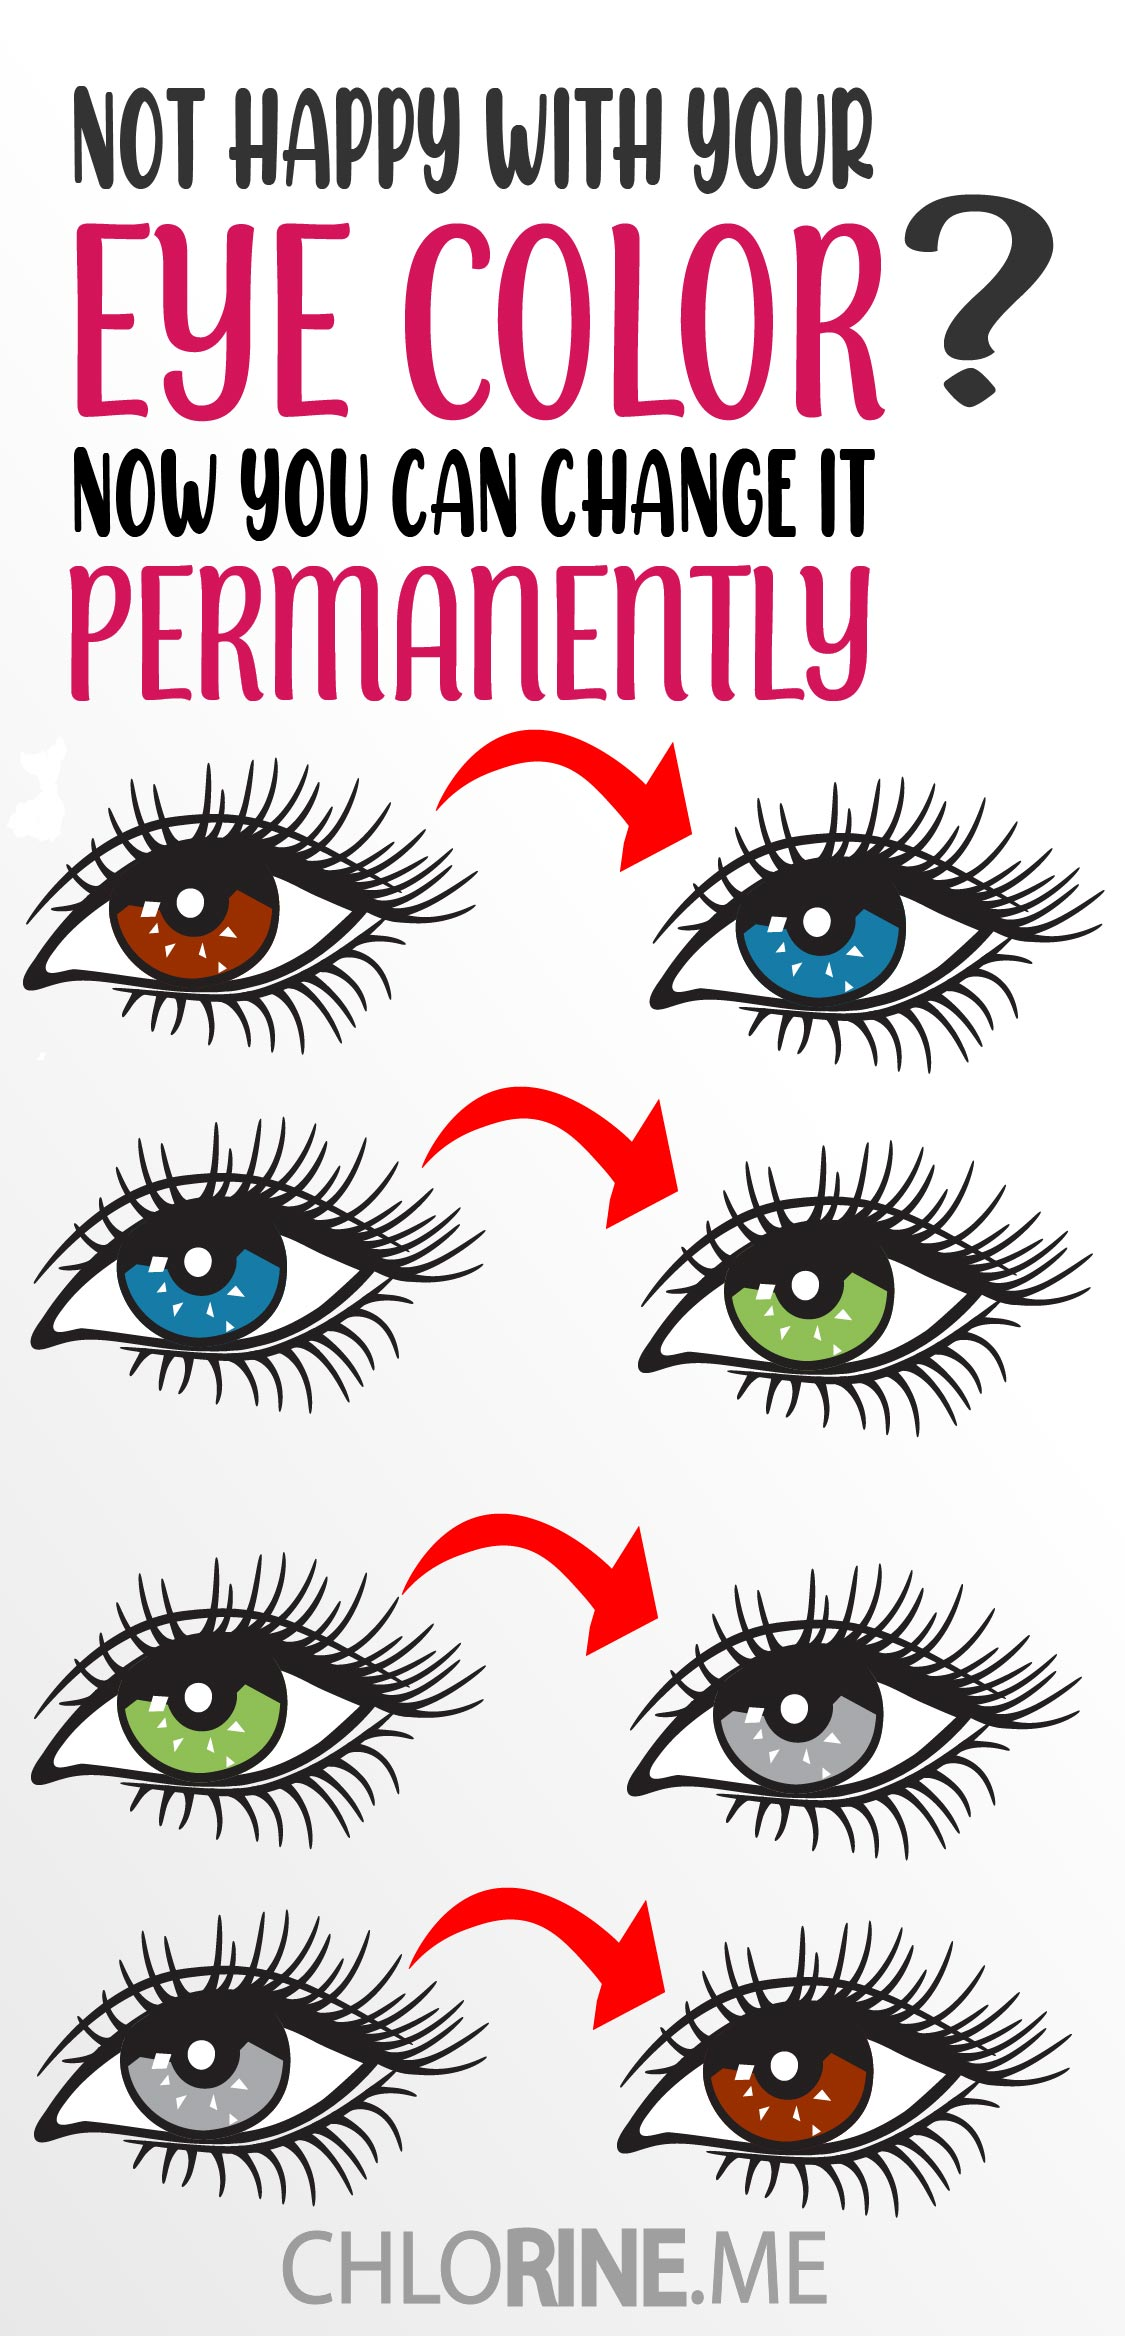 HOW TO CHANGE EYE COLOR PERMENANTLY